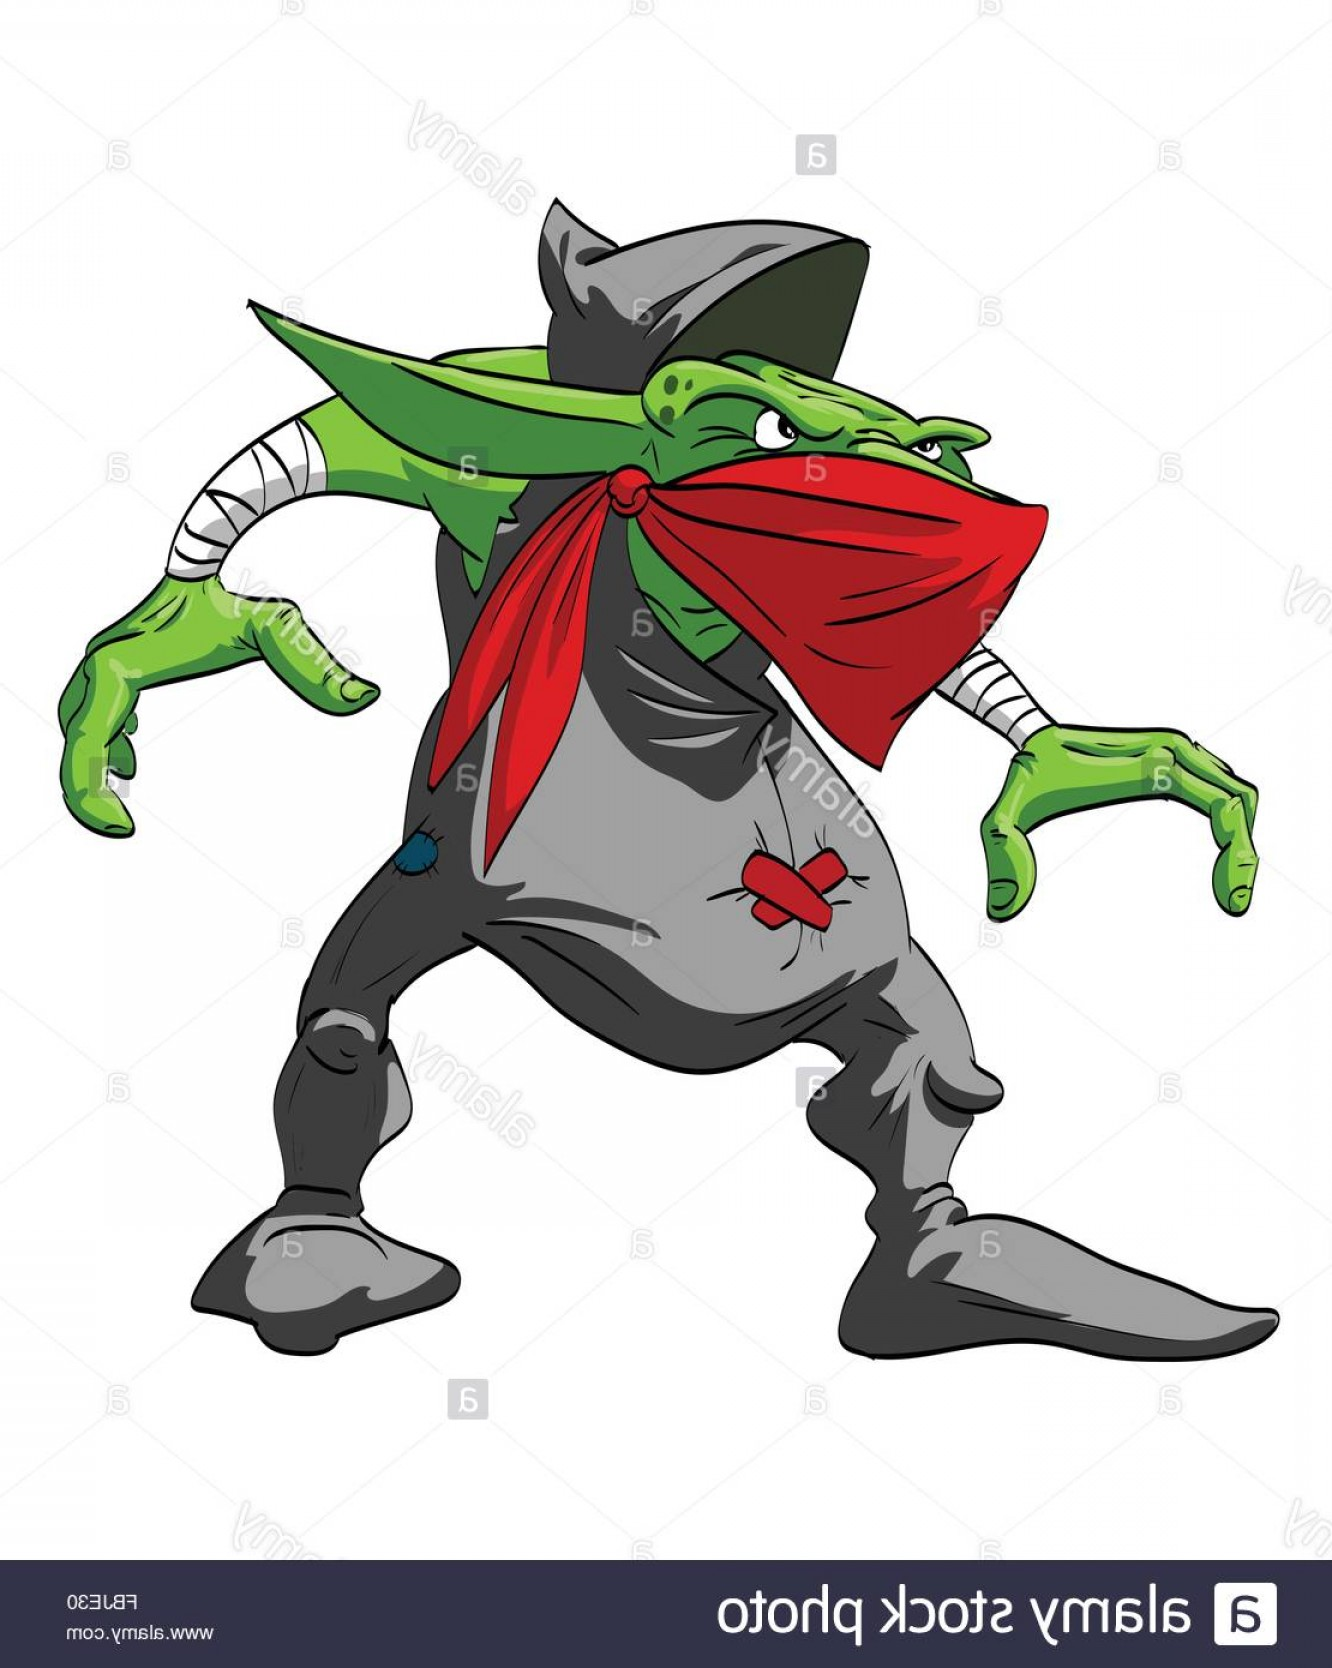 Spawn Vector: Stock Photo Colorful Vector Illustration Of A Goblin Rogue Or A Thief